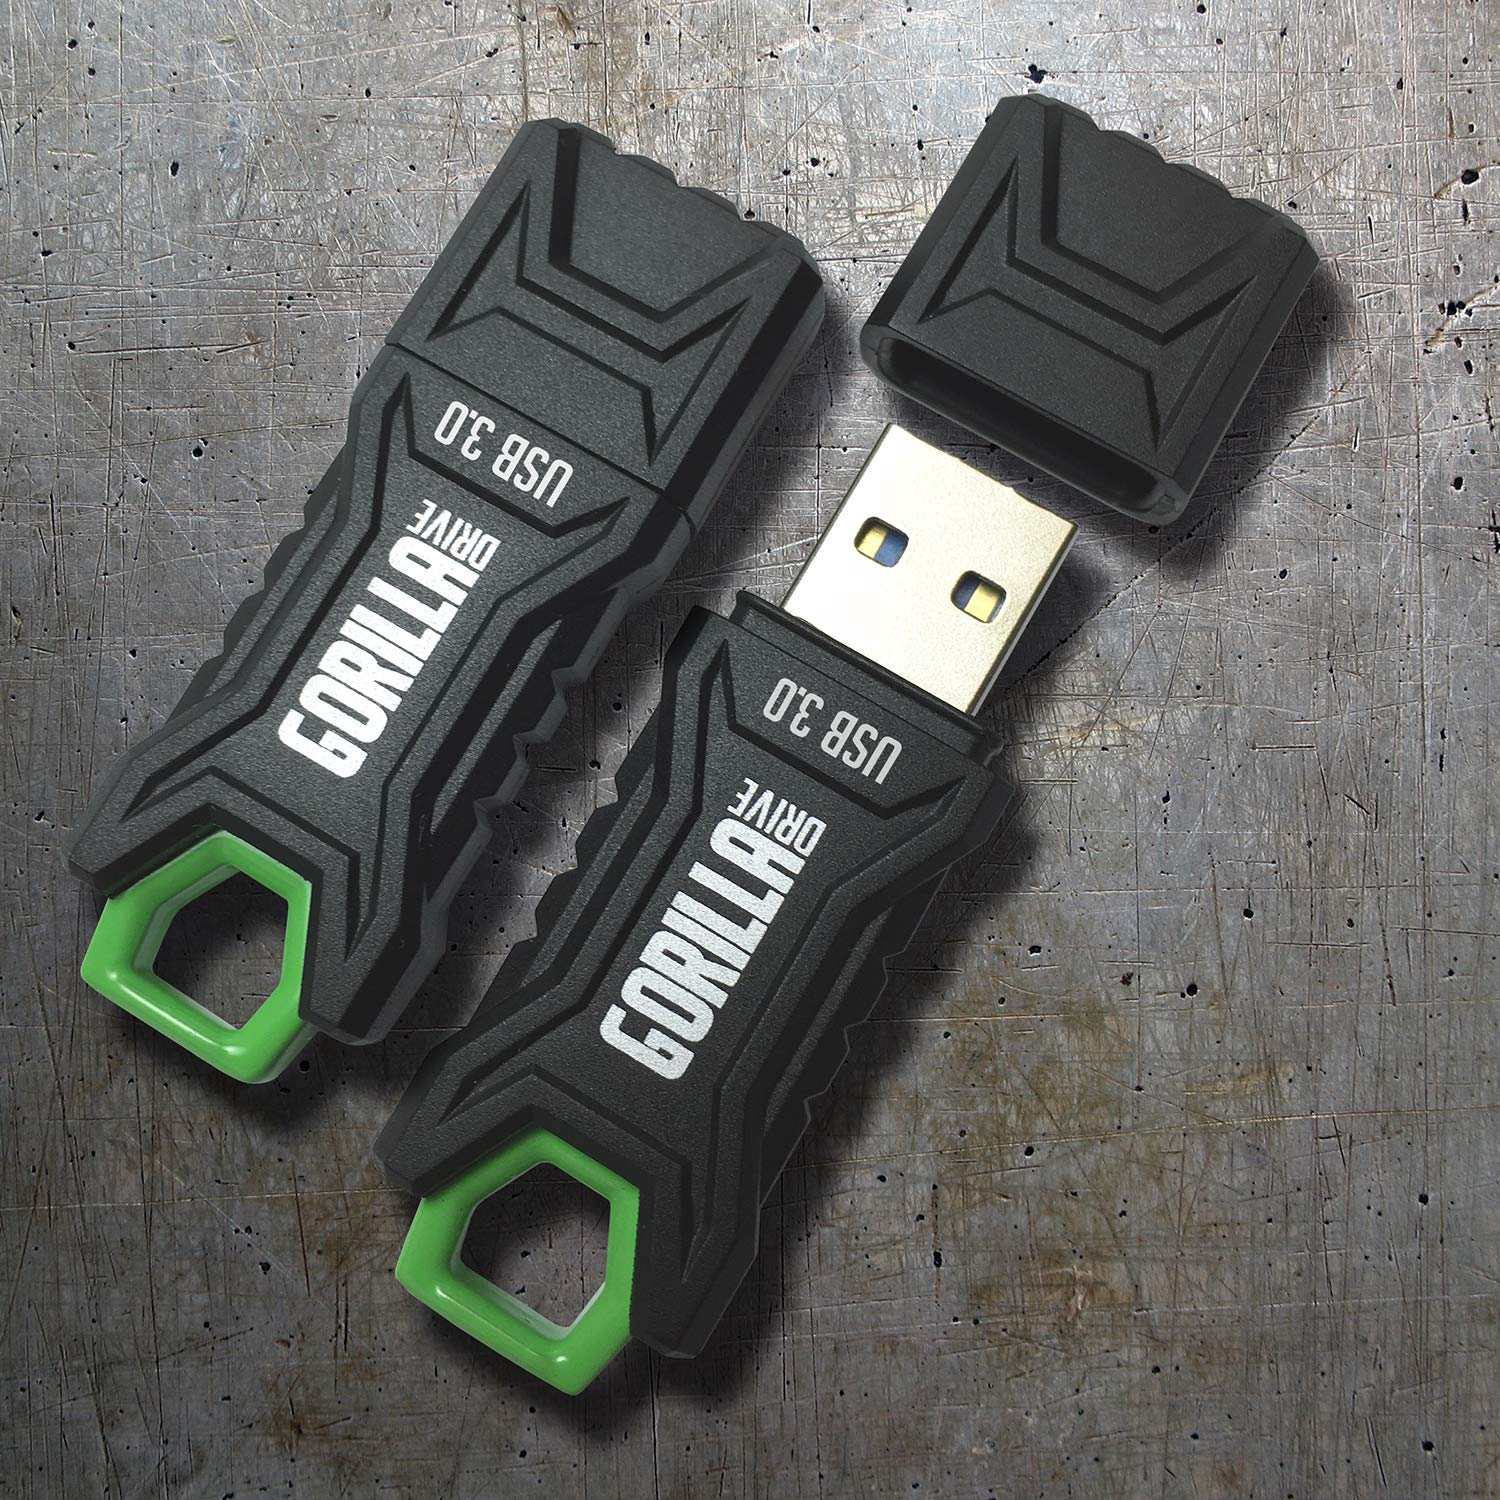 GorillaDrive 3.0 Ruggedized 256GB USB Flash Drive (5-Pack) by GORILLADRIVE (Image #5)